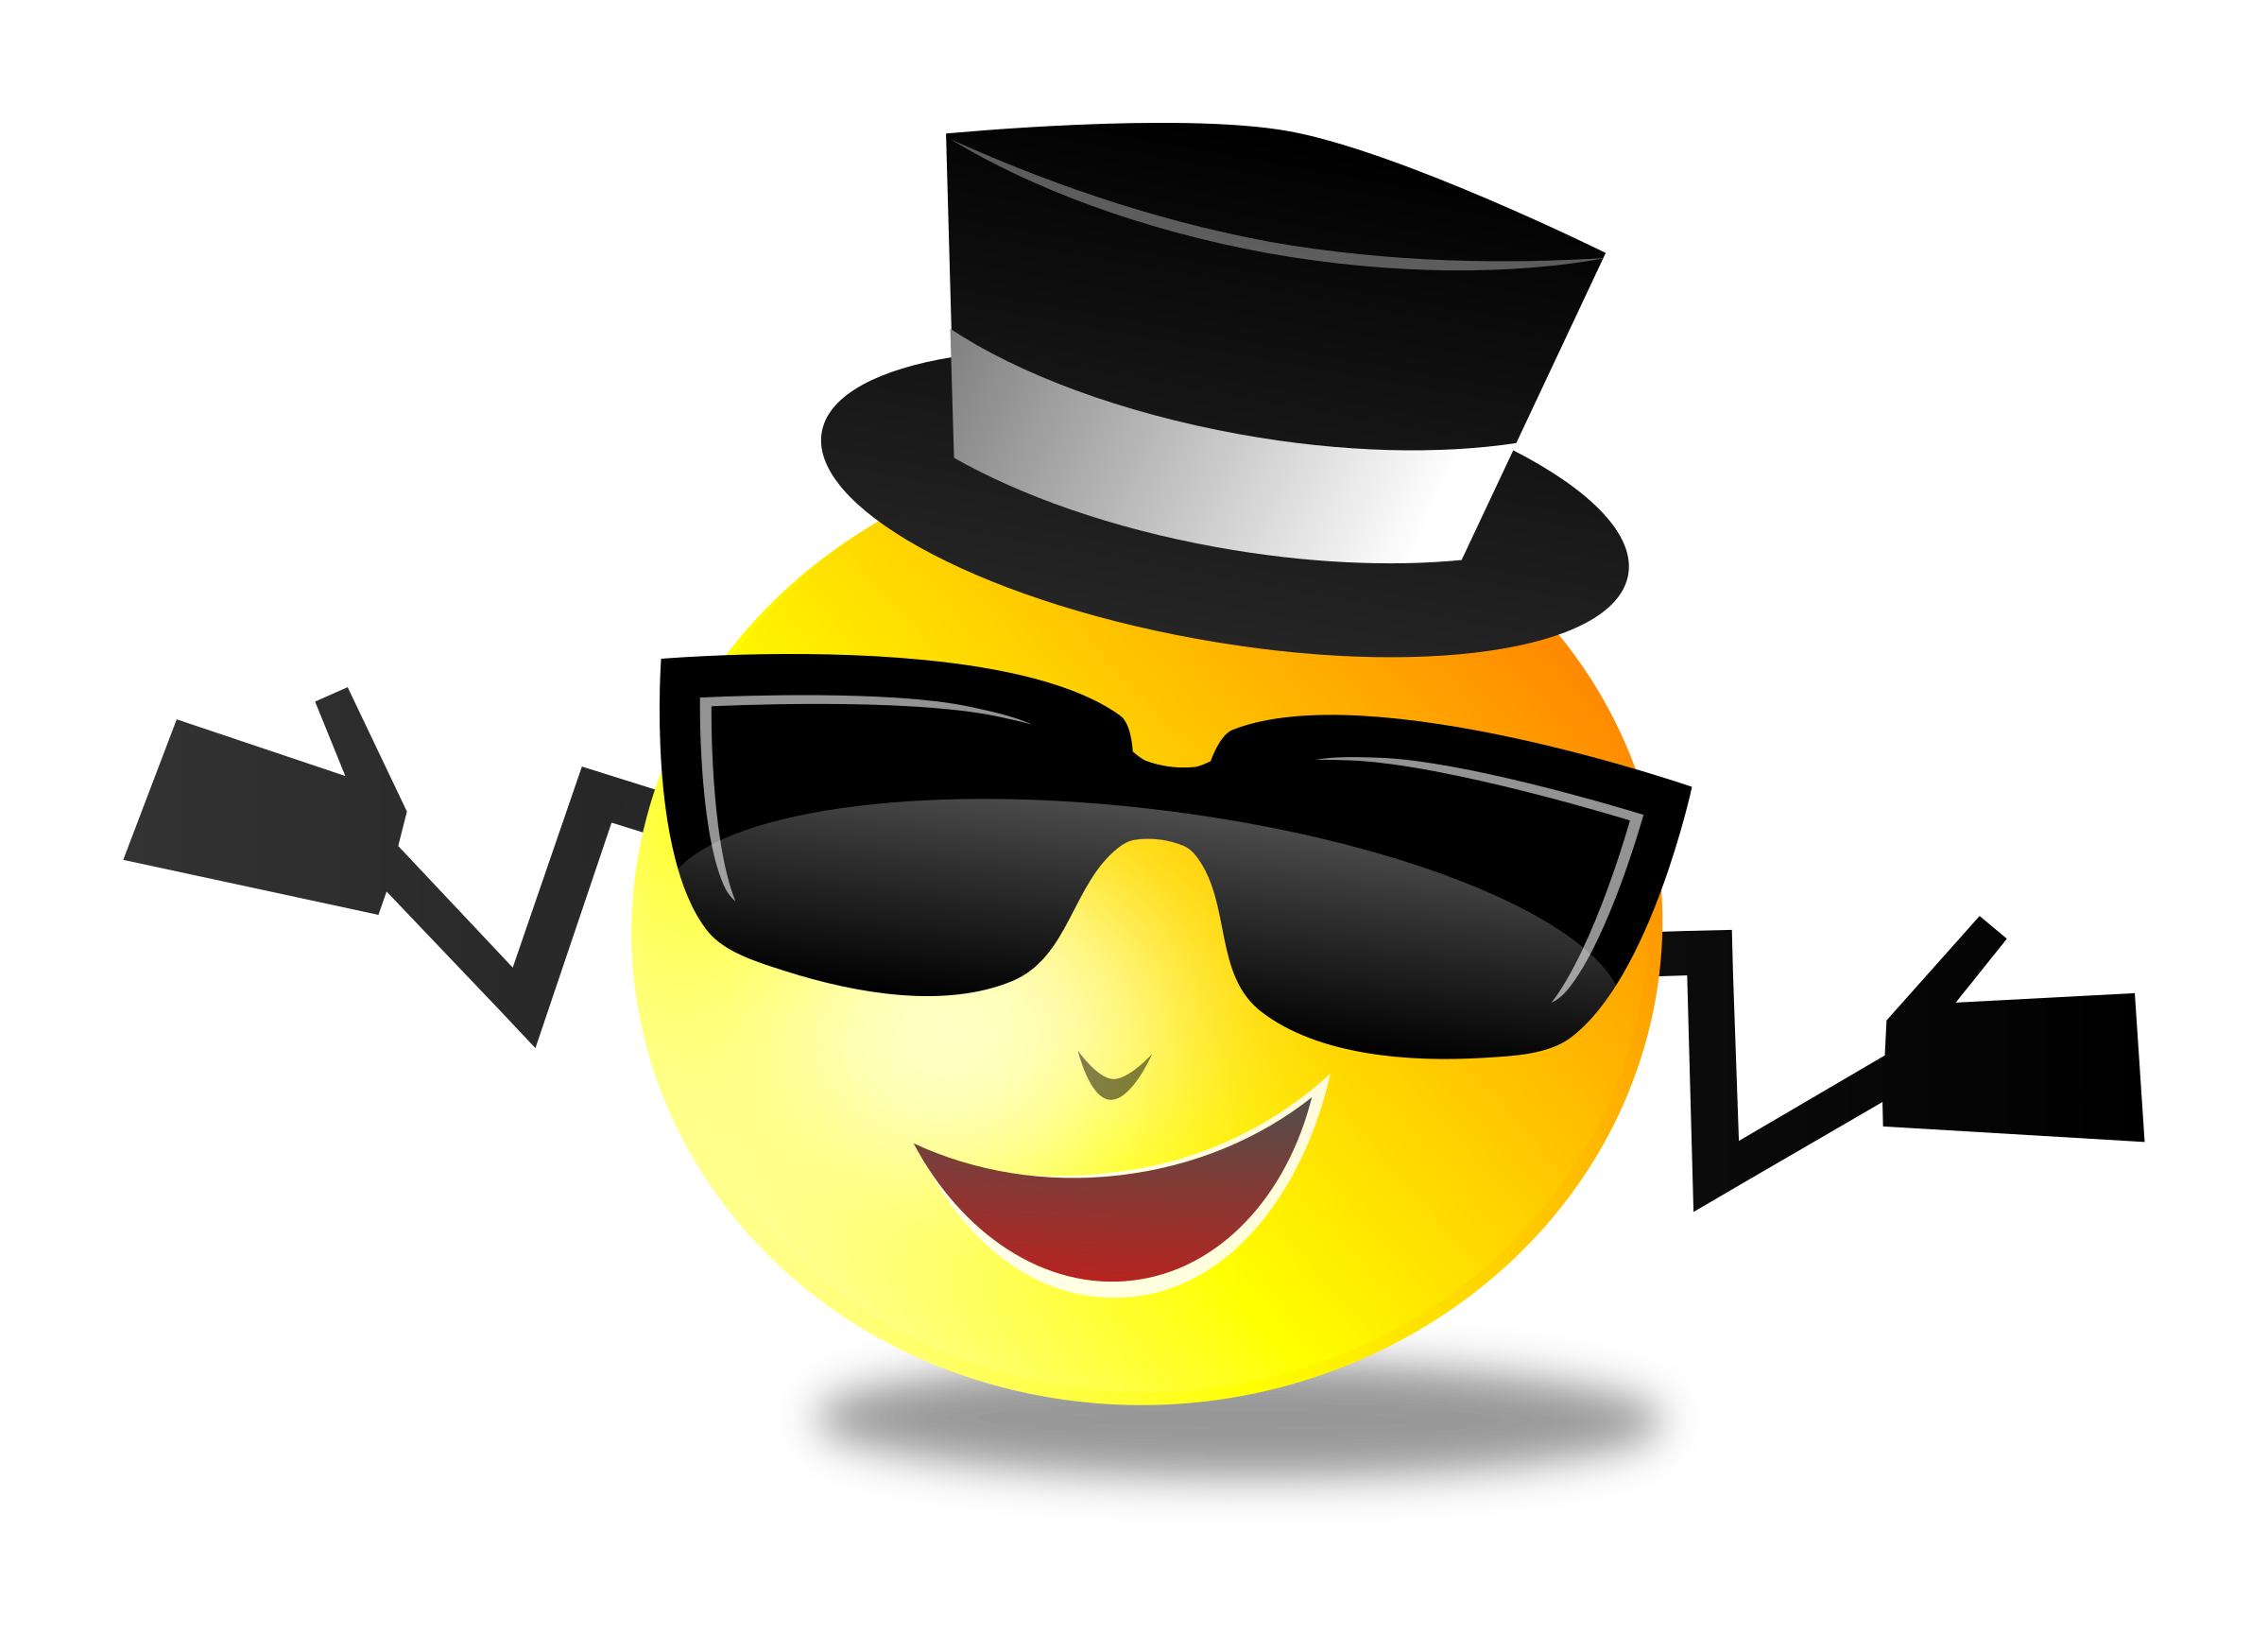 Cool Smiley vector clipart image - Free stock photo